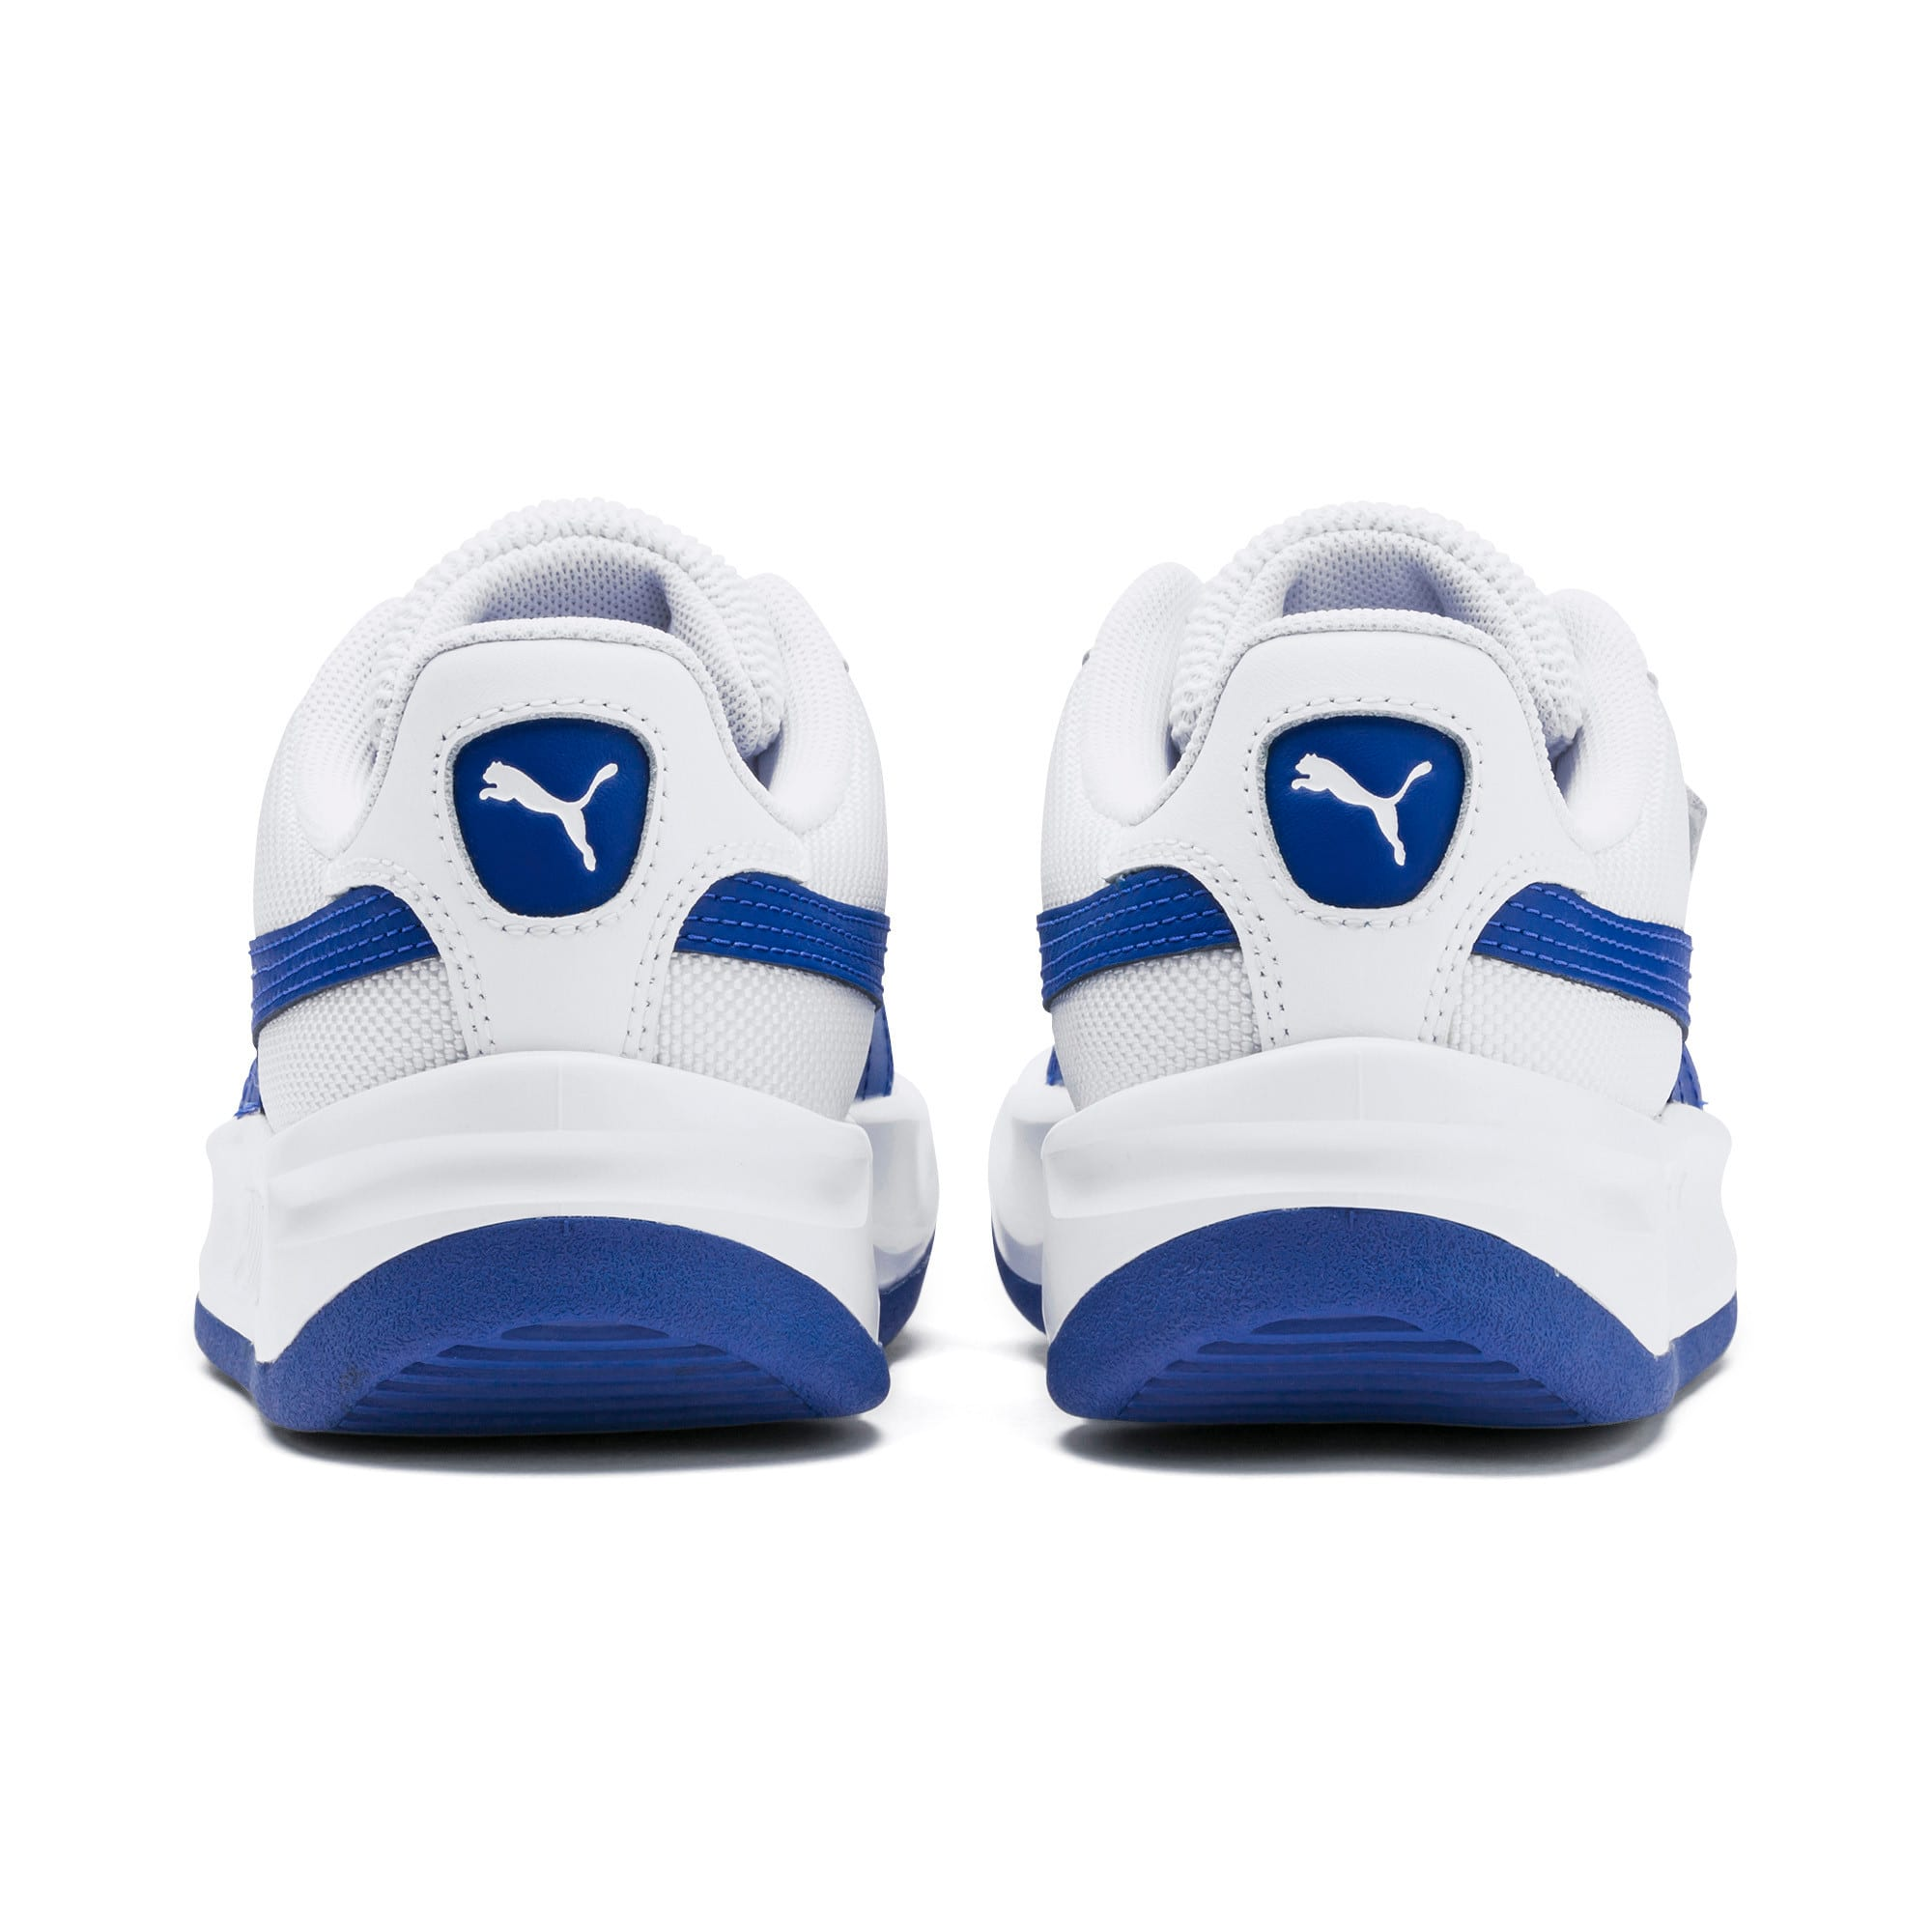 Thumbnail 3 of California Sneakers JR, Puma White-Galaxy Blue, medium